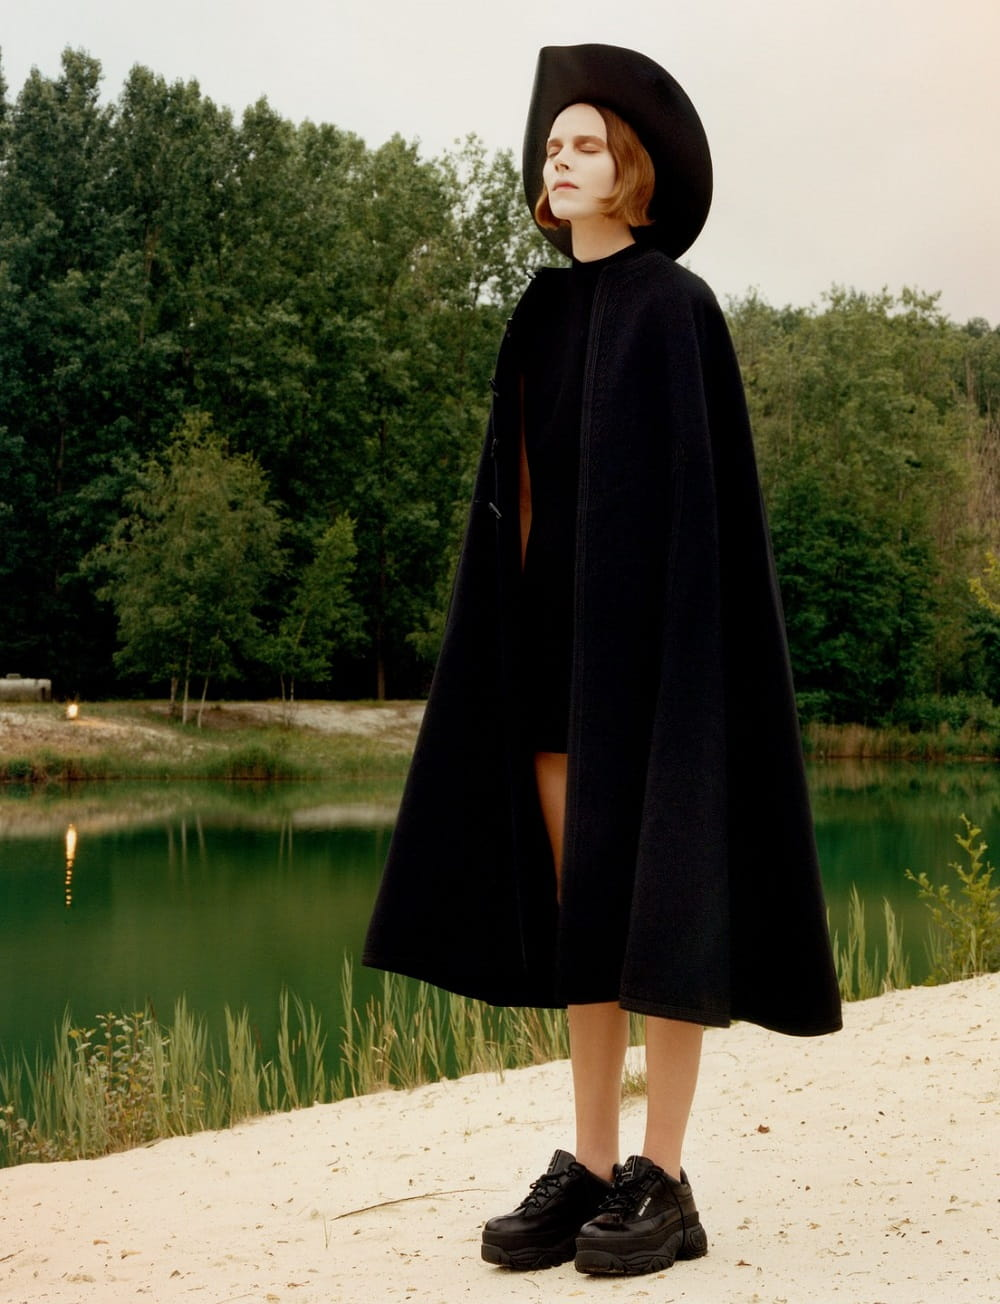 Freja-Beha-Erichsen-by-Jamie-Hawkesworth-for-BritishVogue-Dec2018-08.jpg